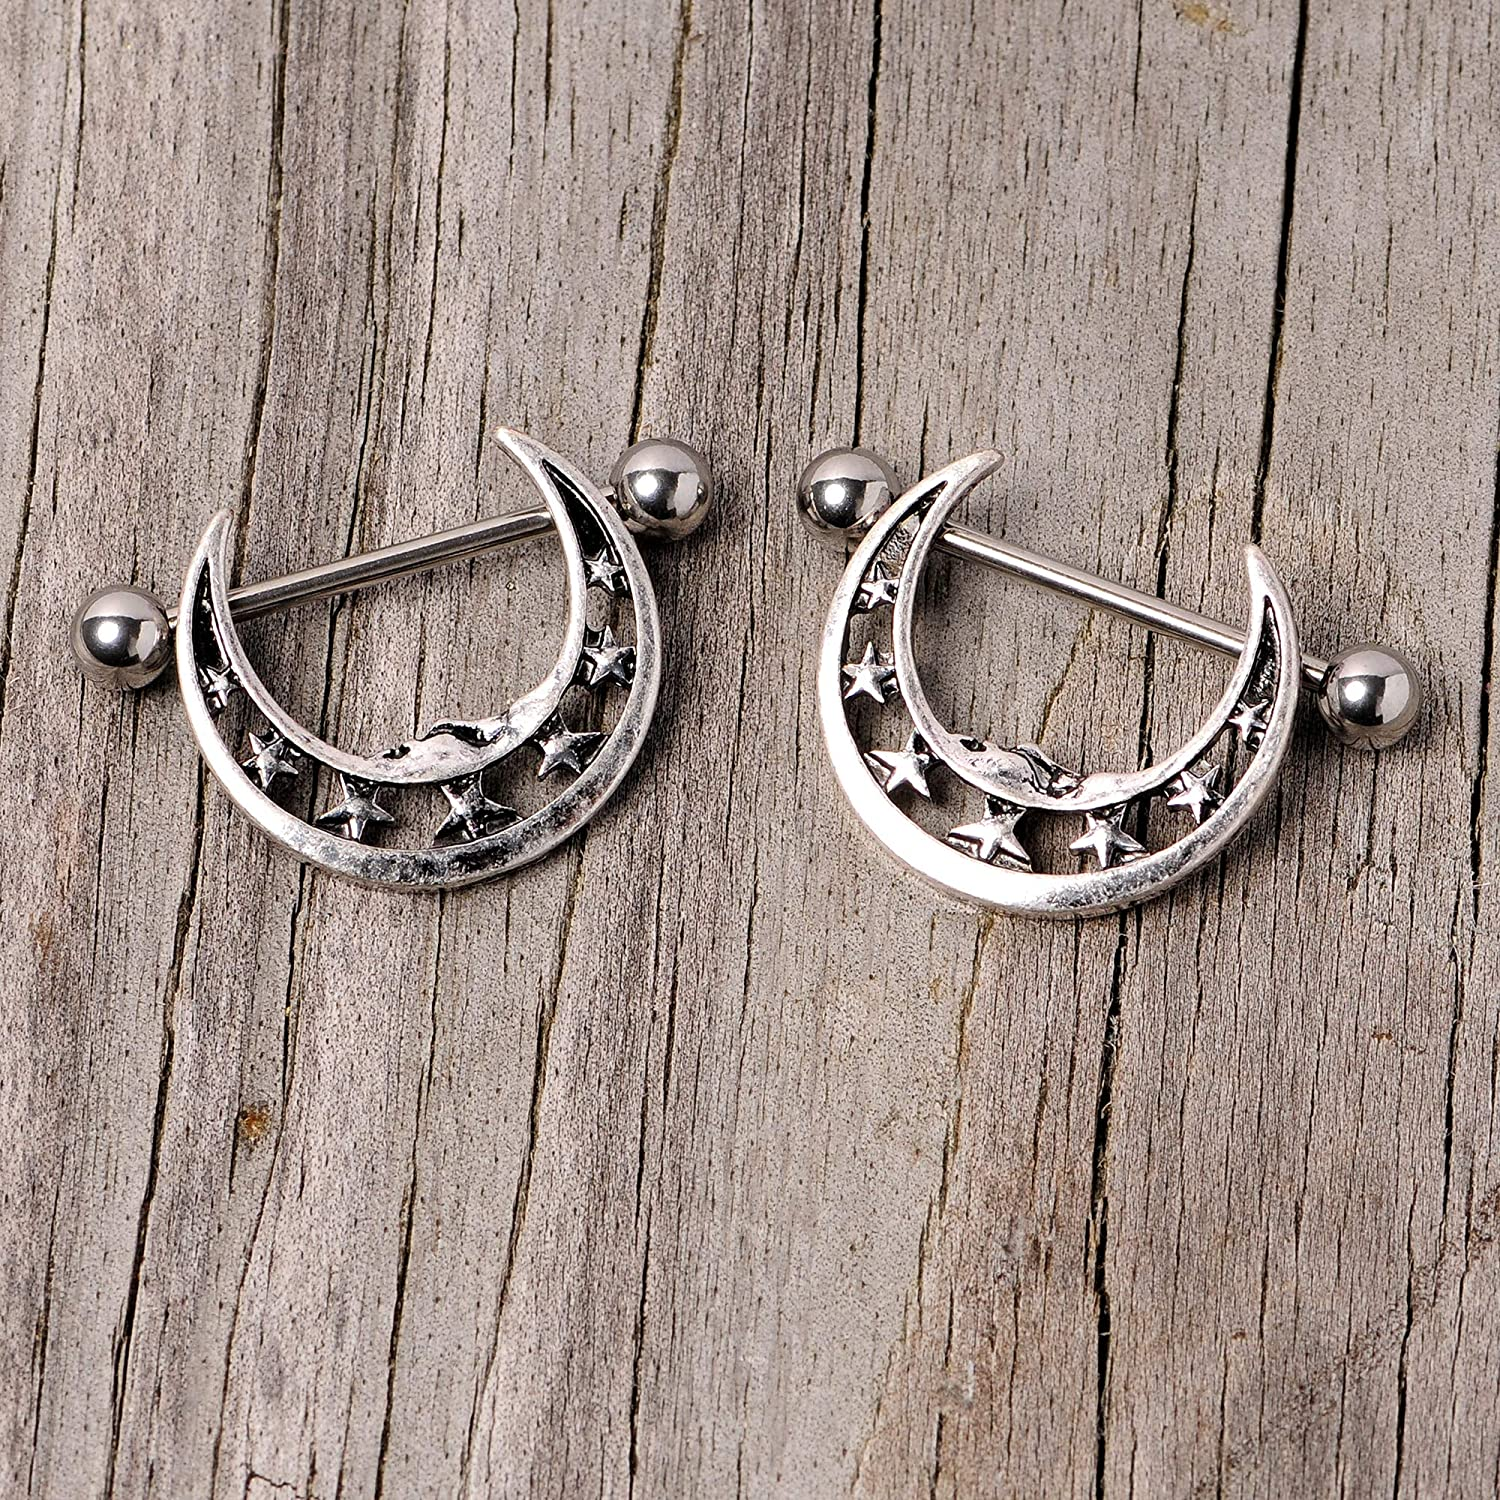 Body Candy 14G Womens Nipplerings Piercing Stainless Steel 2Pc Crescent Moon Star Nipple Shield Set 7/8